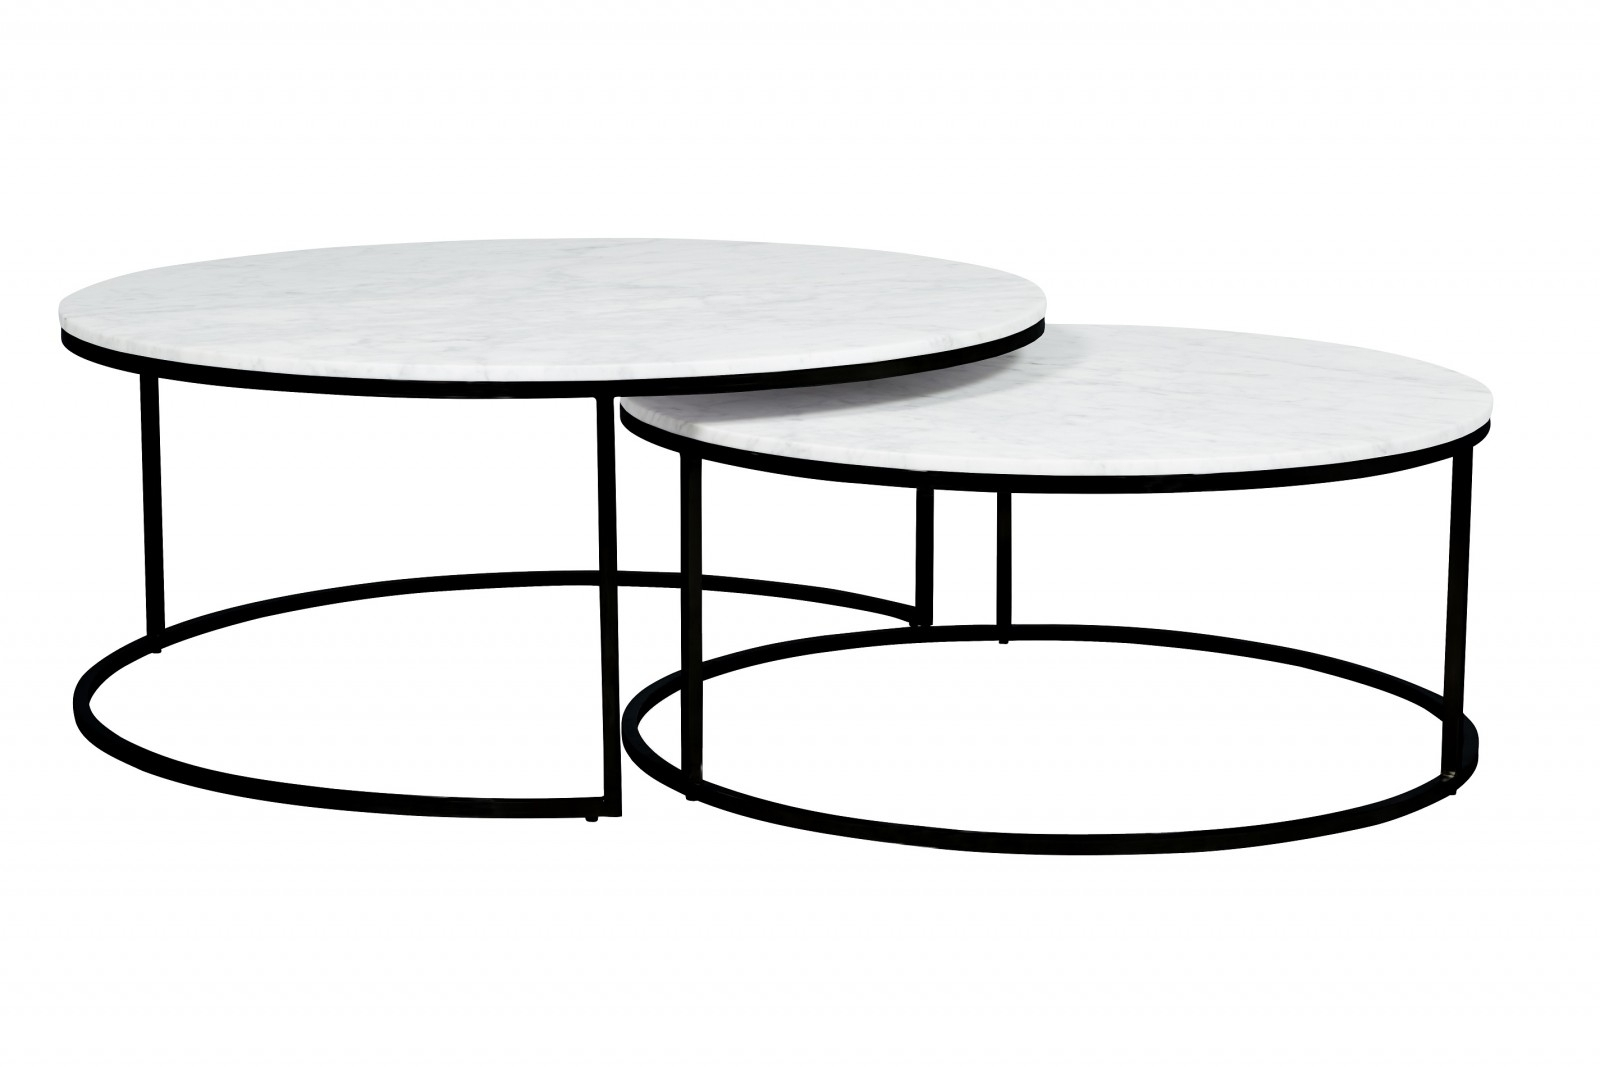 Elle Round Nest Marble Coffee Table Set | Pre Order | The Block Shop Pertaining To Set Of Nesting Coffee Tables (Gallery 26 of 30)